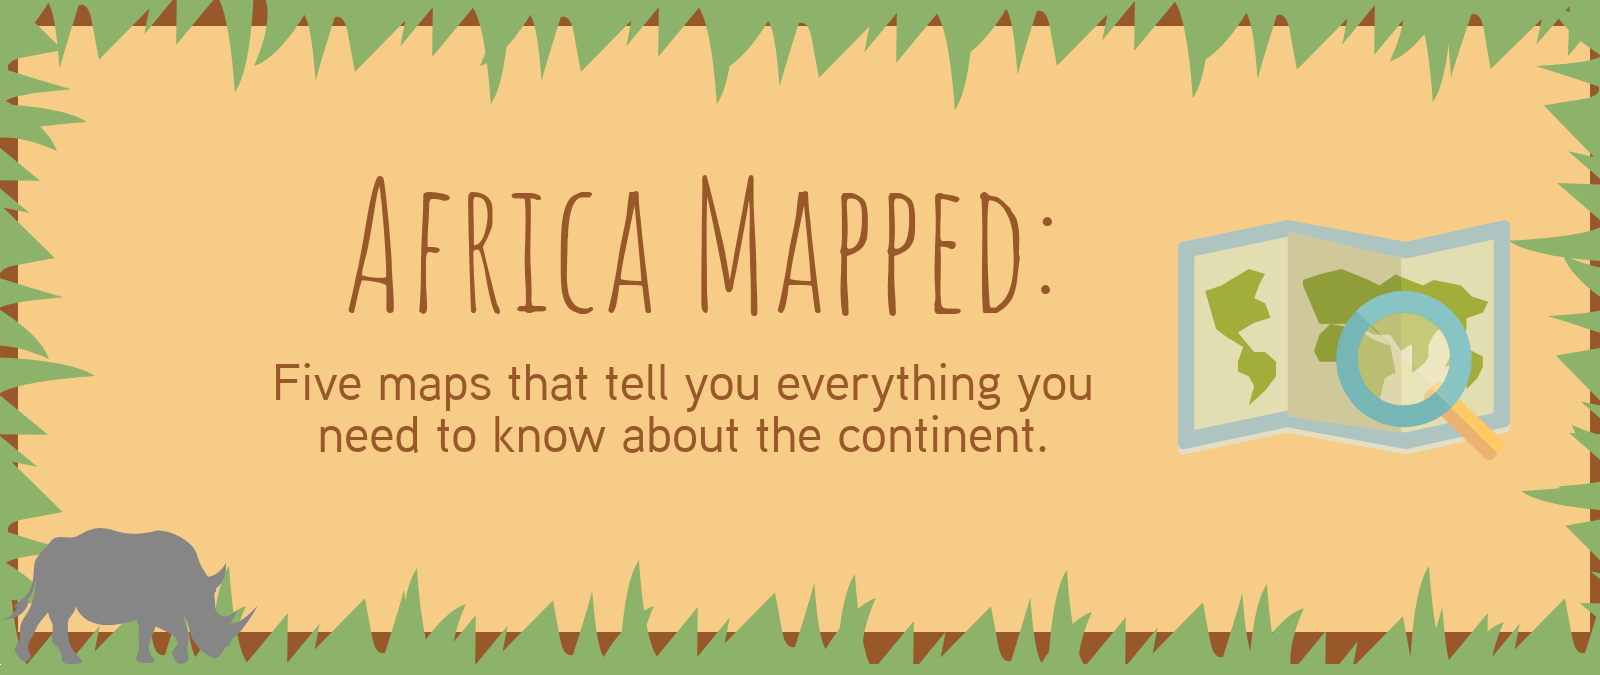 Africa mapped: the title